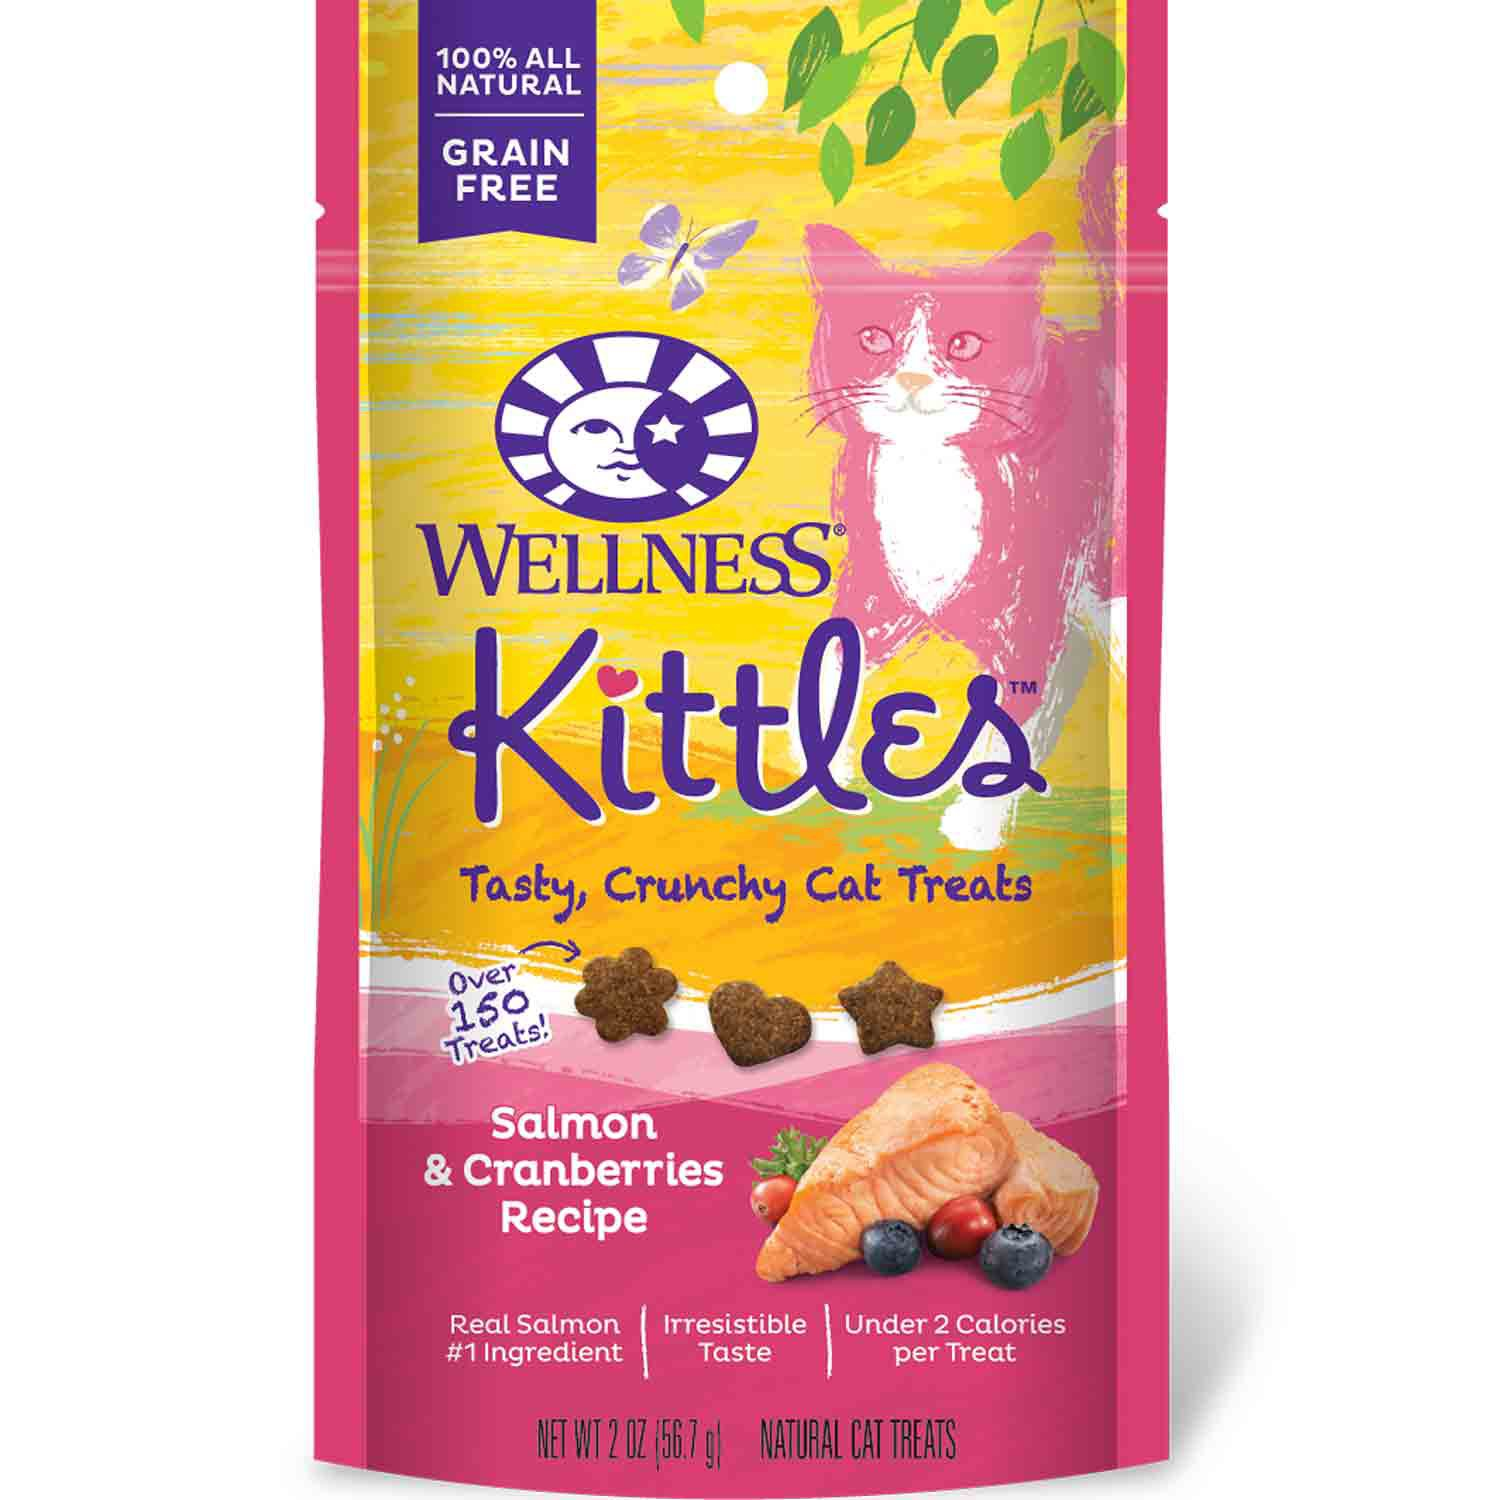 Wellness Grain Free Salmon and Cranberry Kittles 2oz